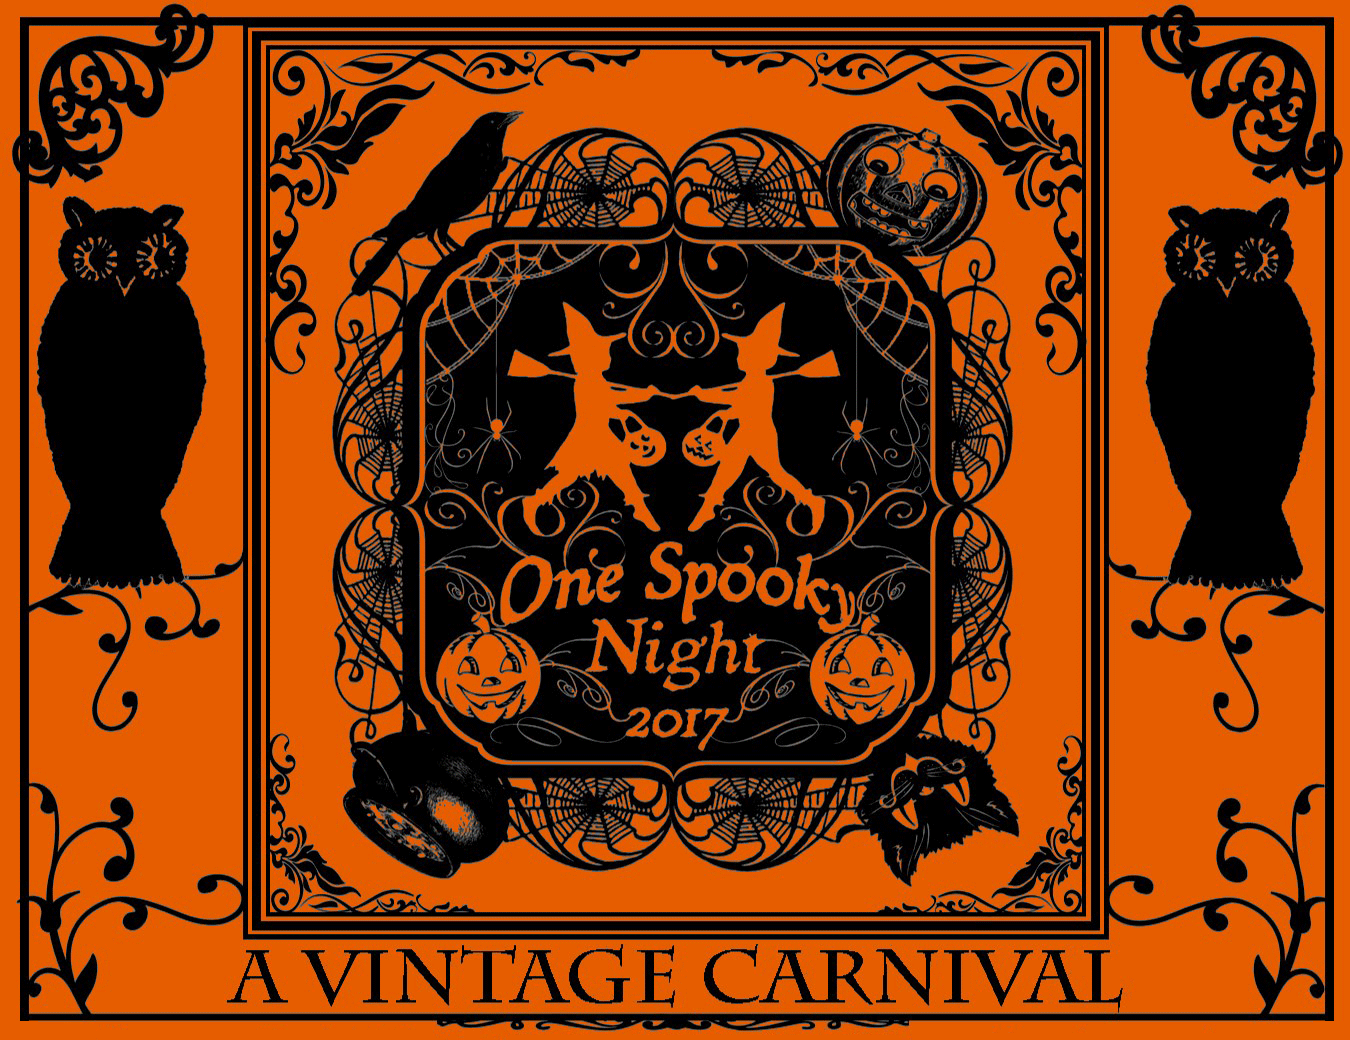 One Spooky Night - A Vintage Carnival